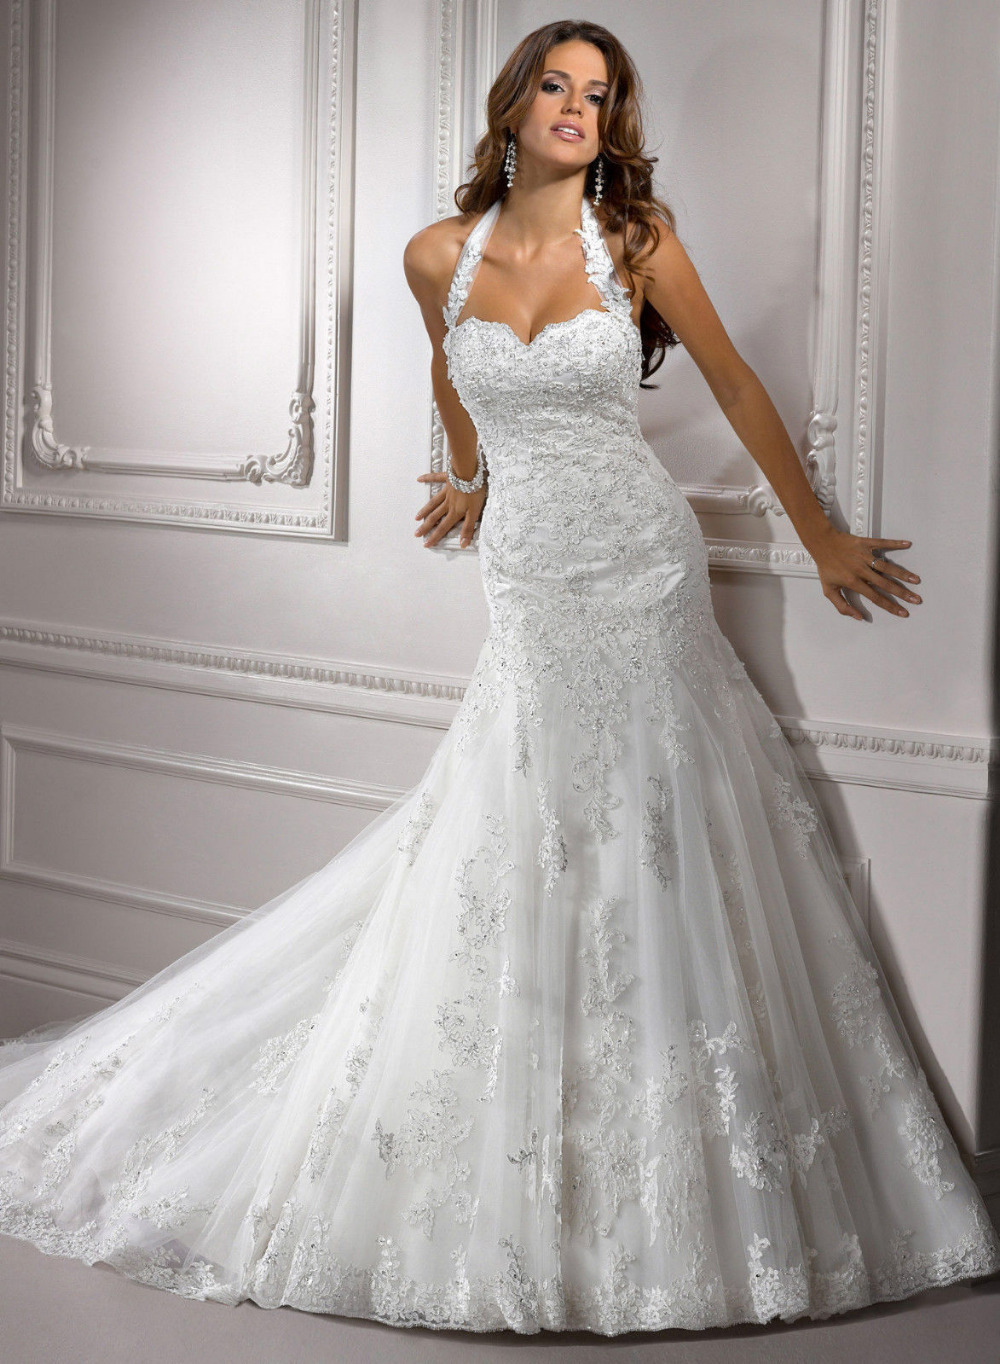 aliexpresscom buy 2015 new white ivory mermaid lace wedding dress custom size 6 8 10 12 14 16 18 from reliable custom t shirt dresses suppliers on